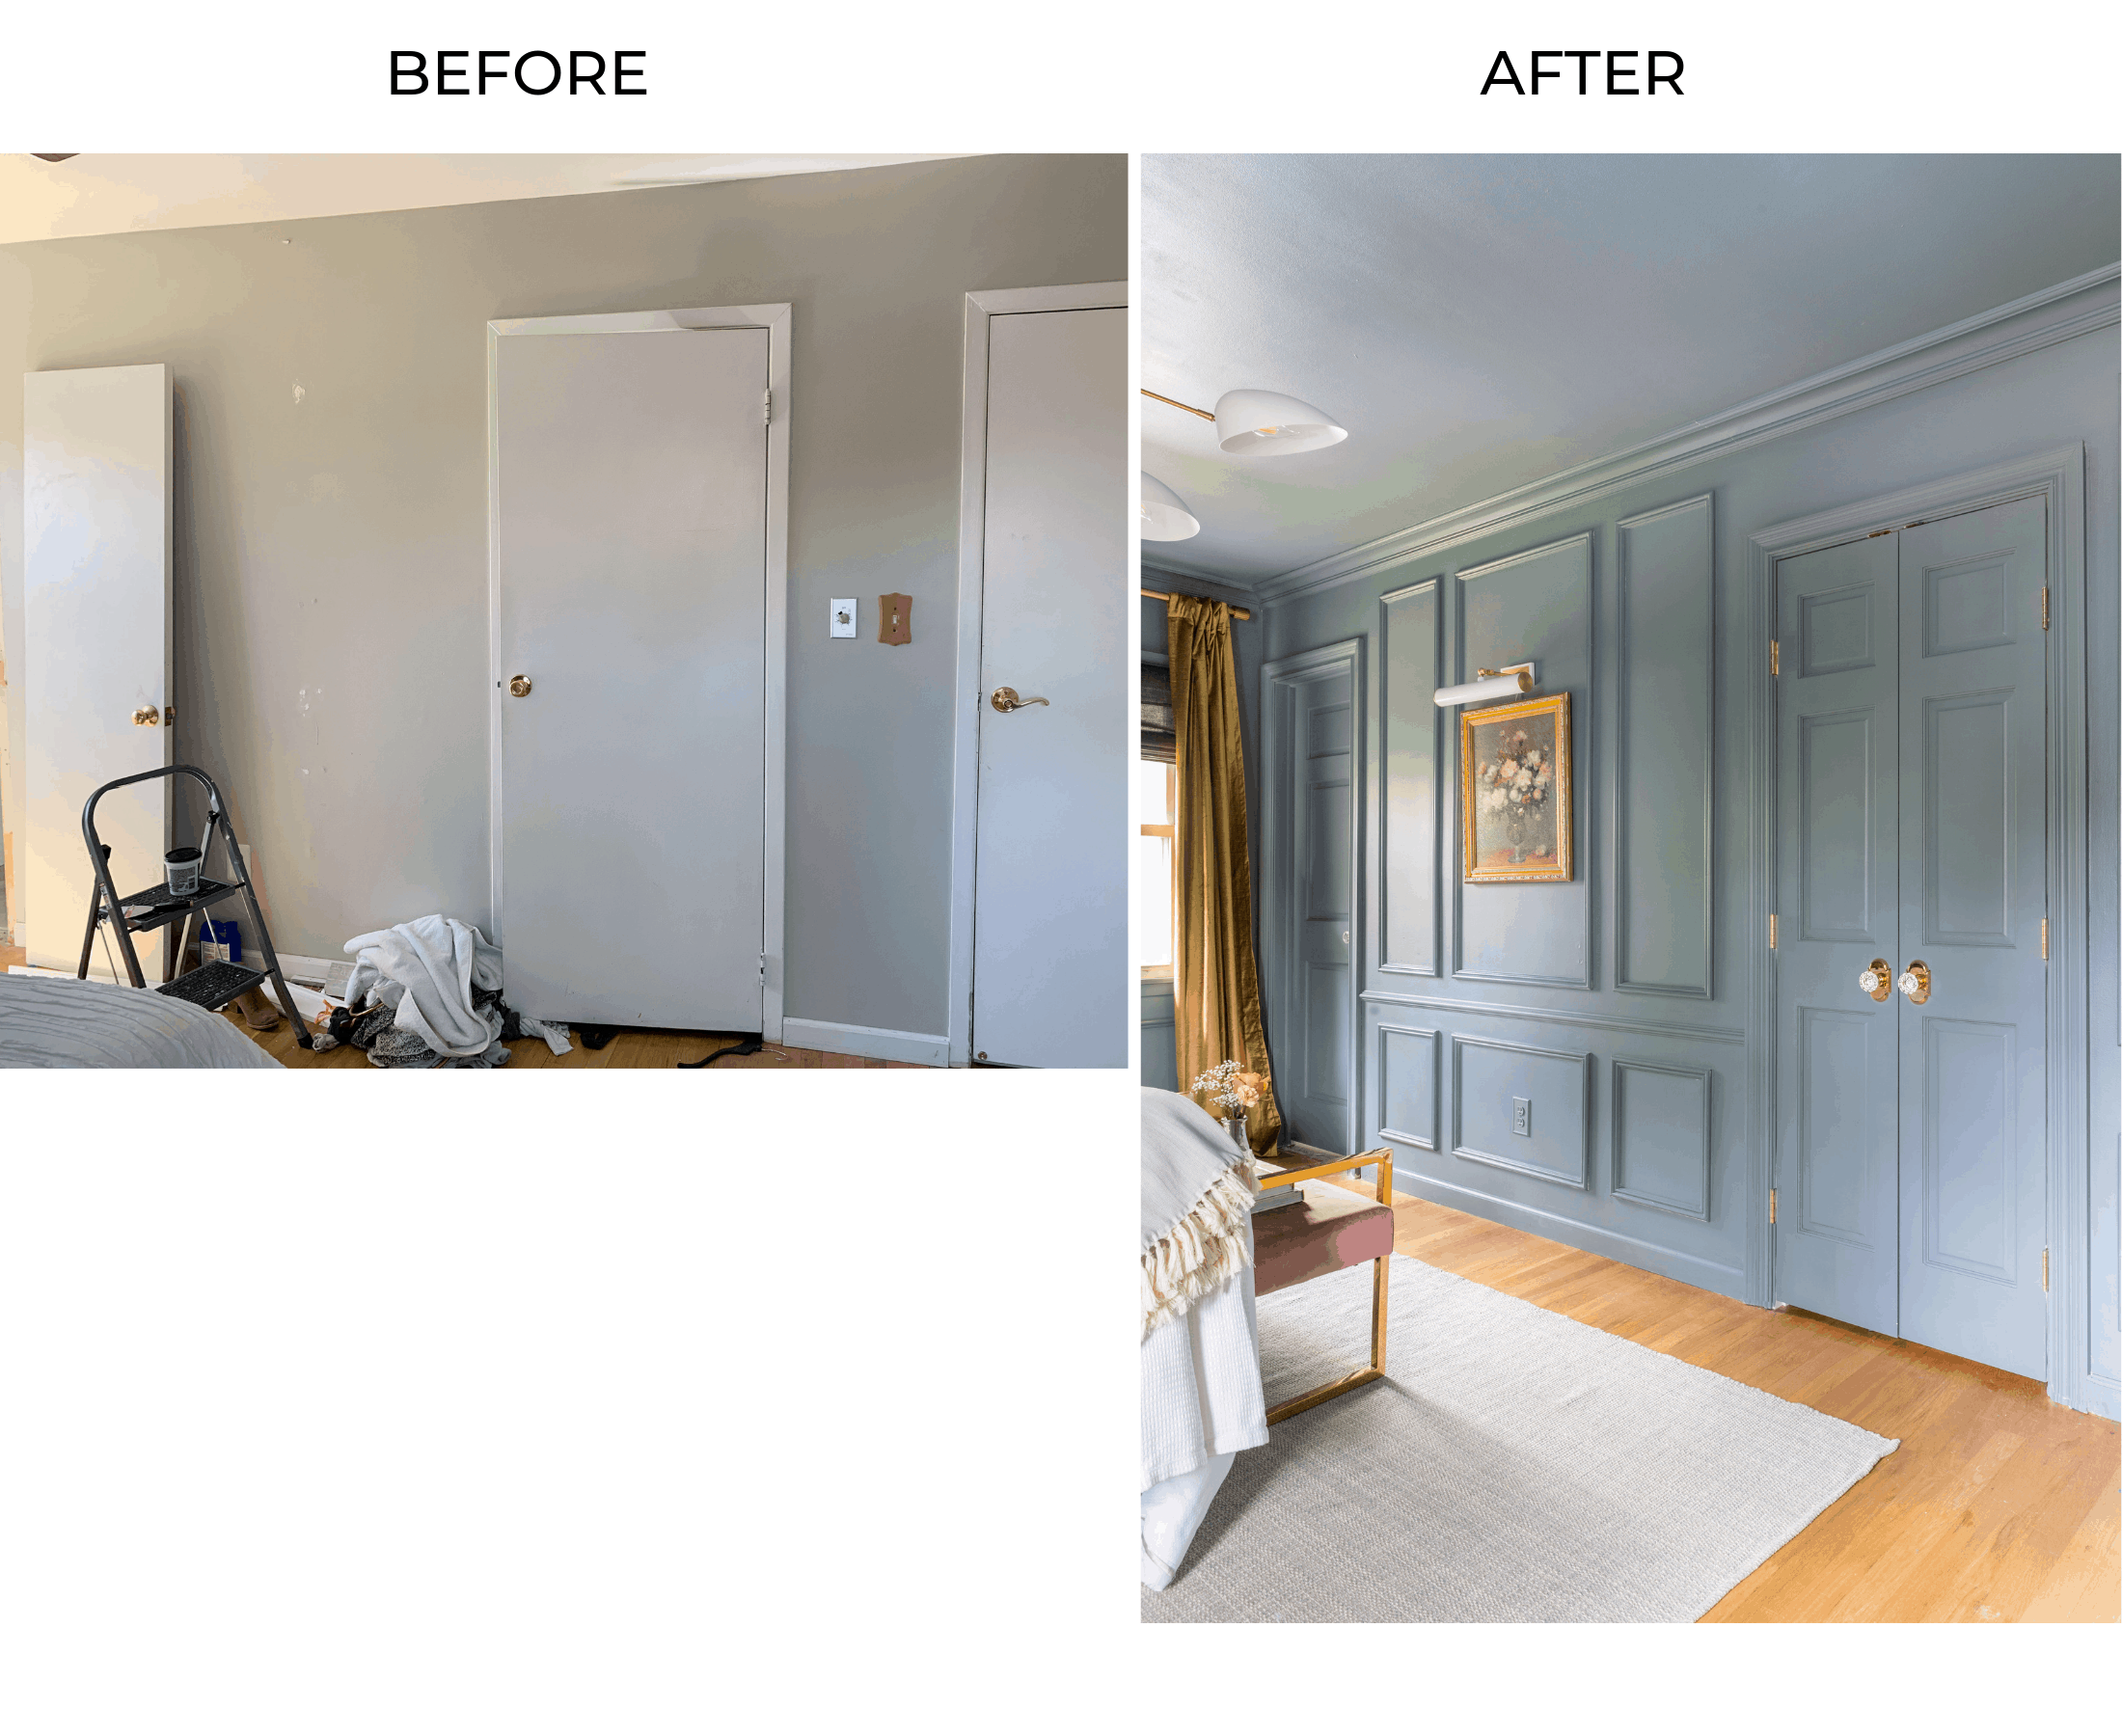 alisa-bovino-bedroom-before-after